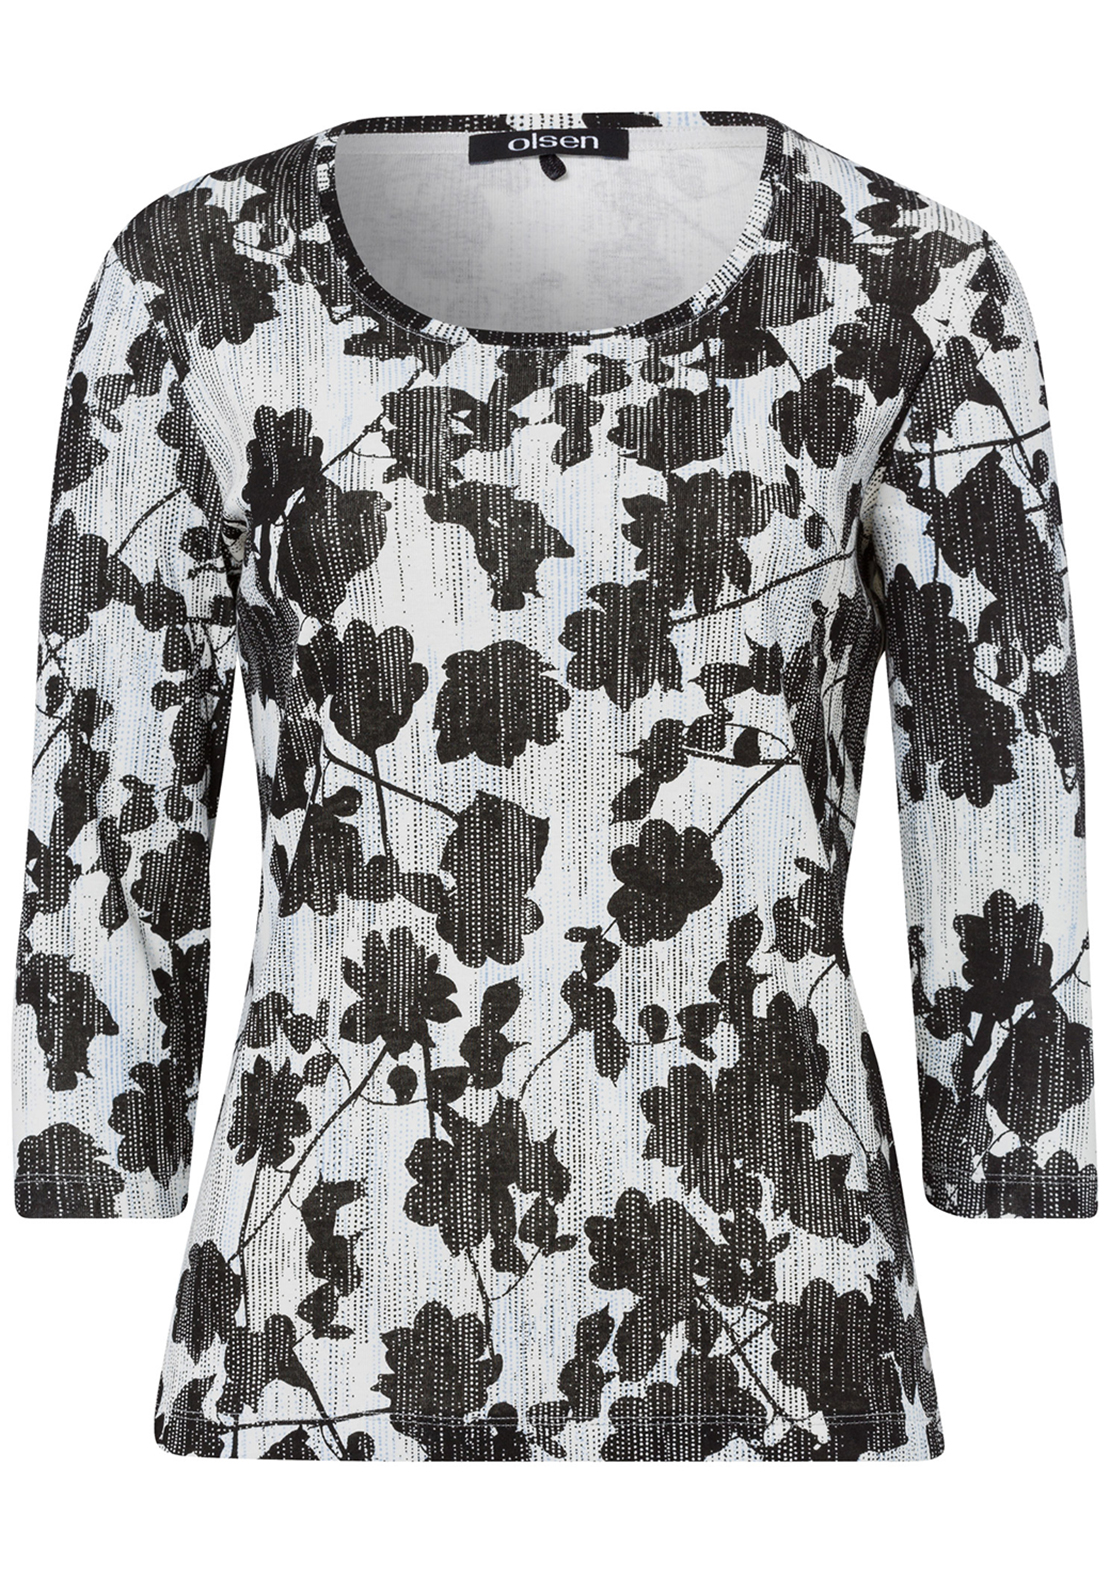 Olsen Floral Print Cropped Sleeve T-Shirt, Black and Cream